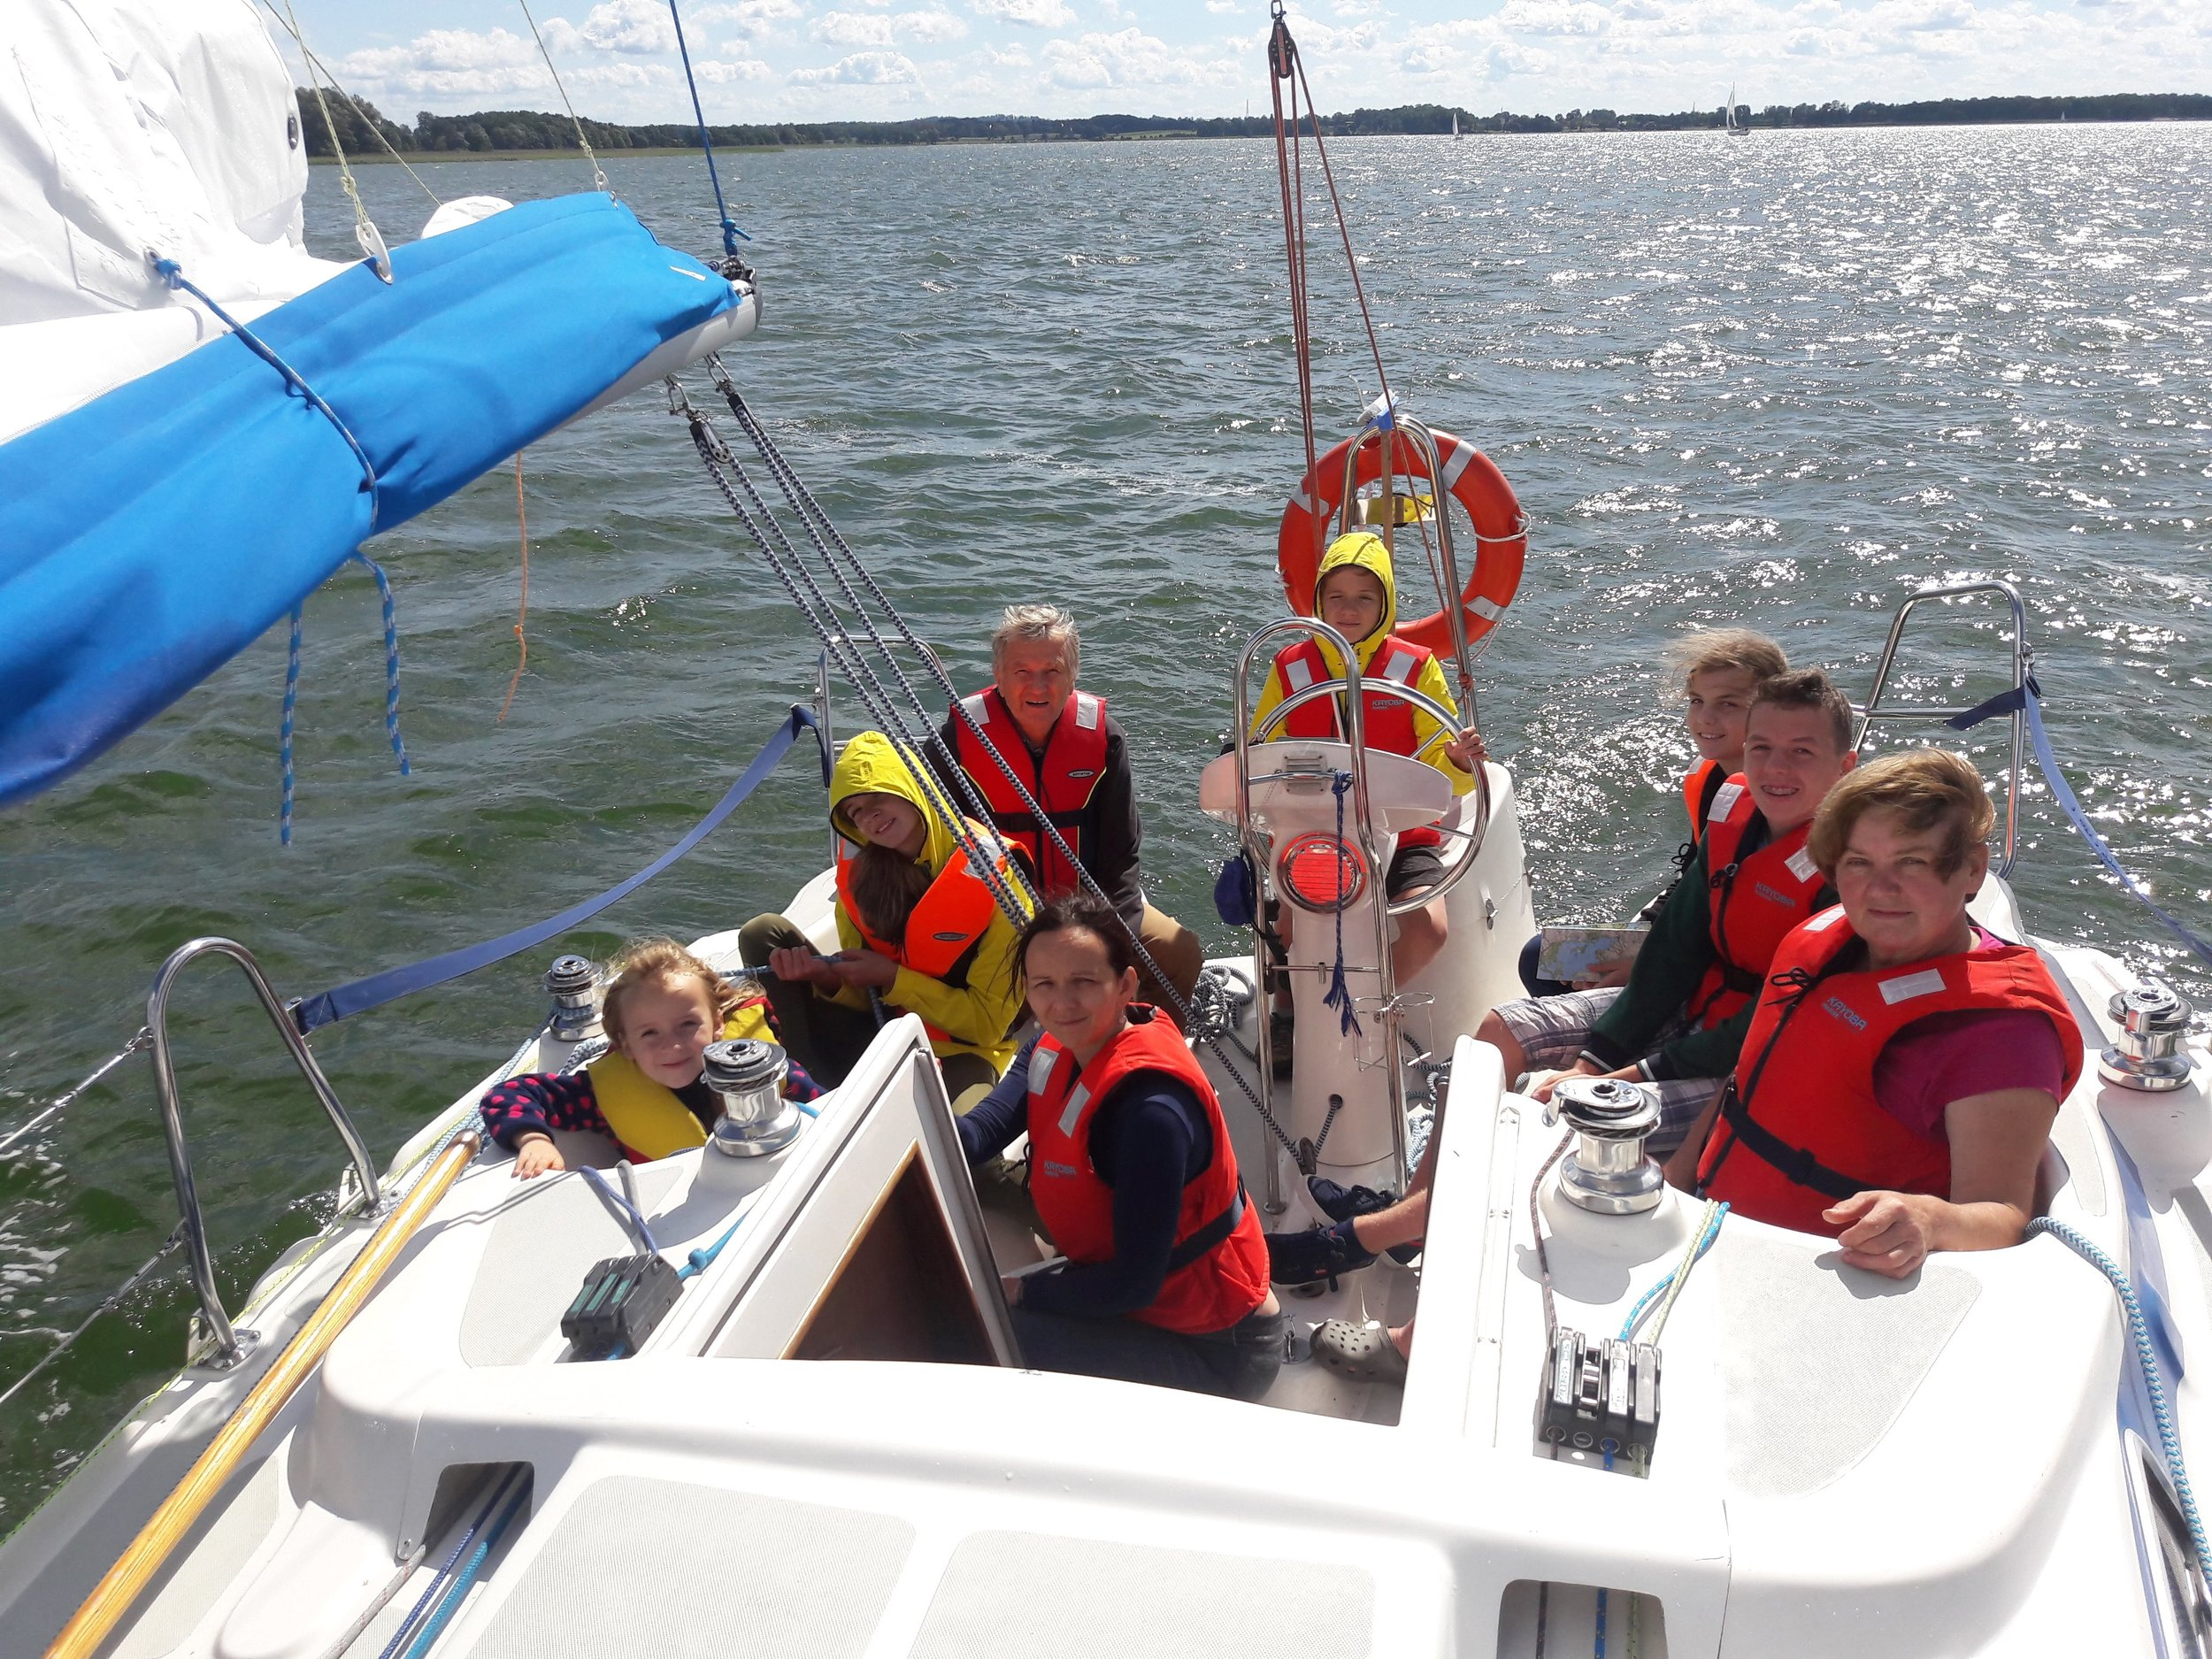 The crew on their most recent family sailing